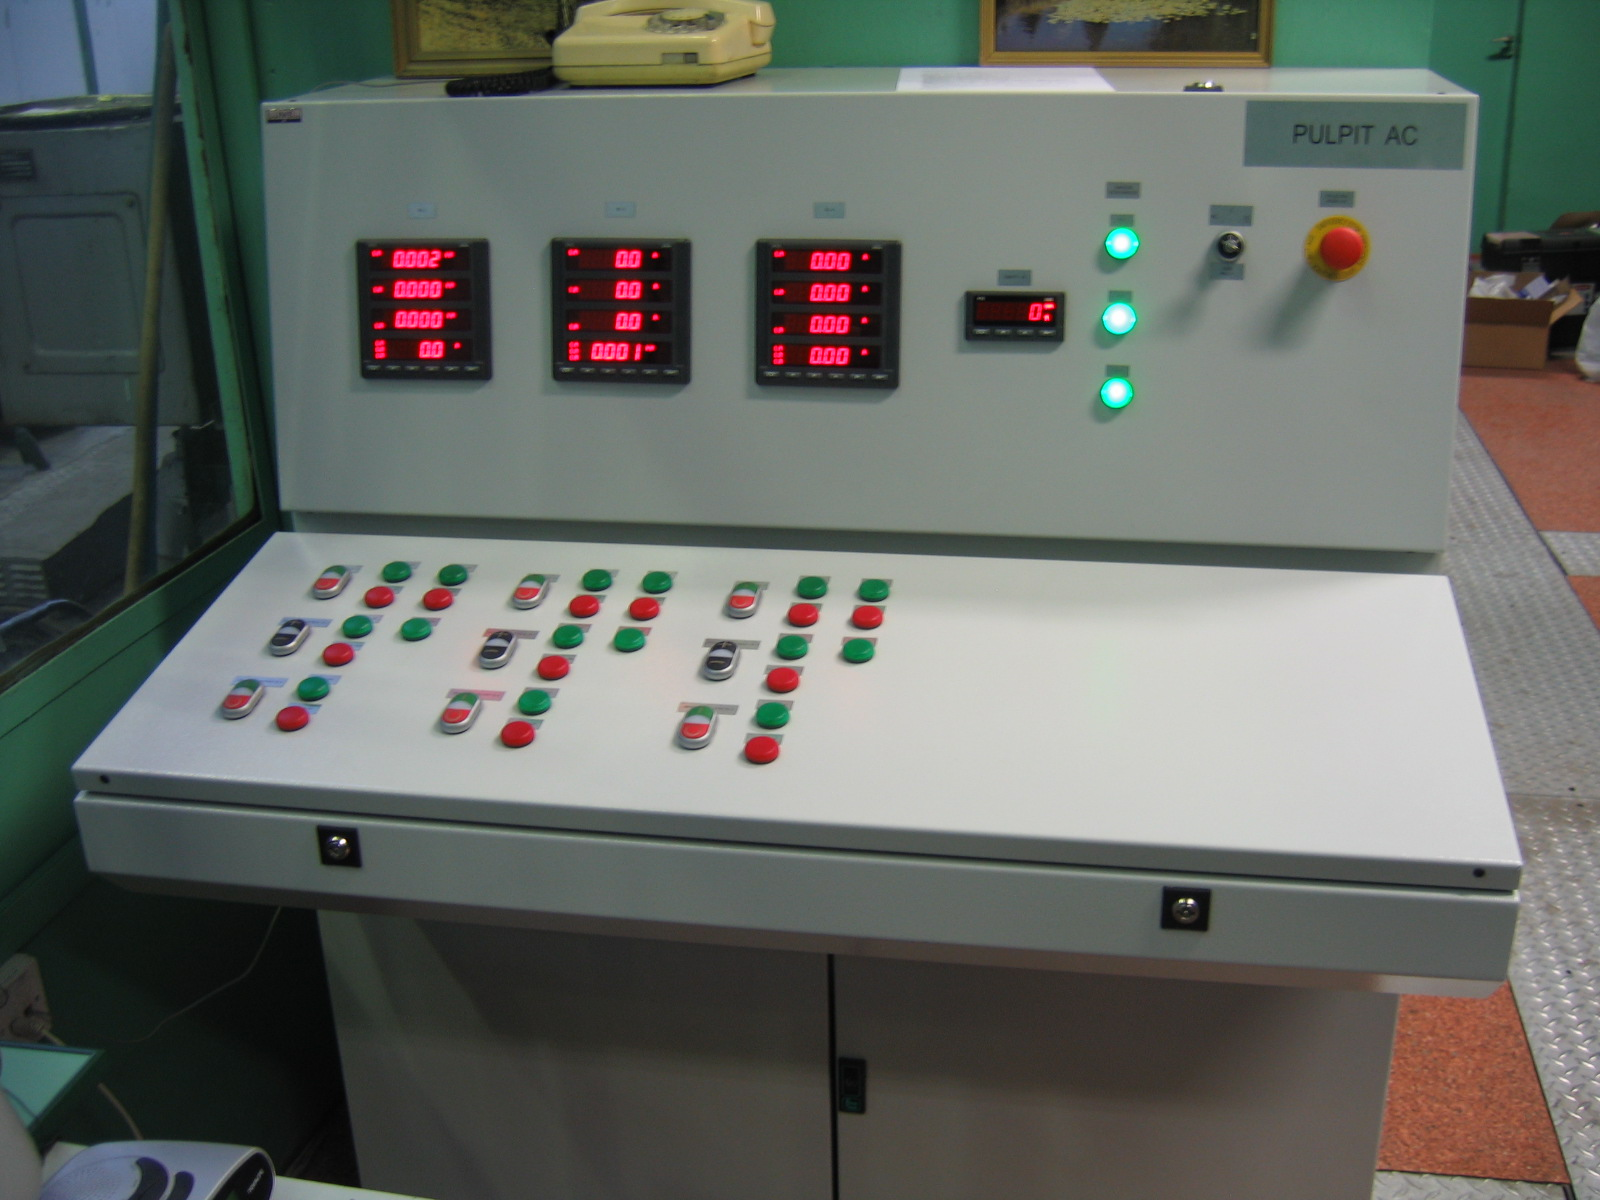 Laboratory-testing work stations